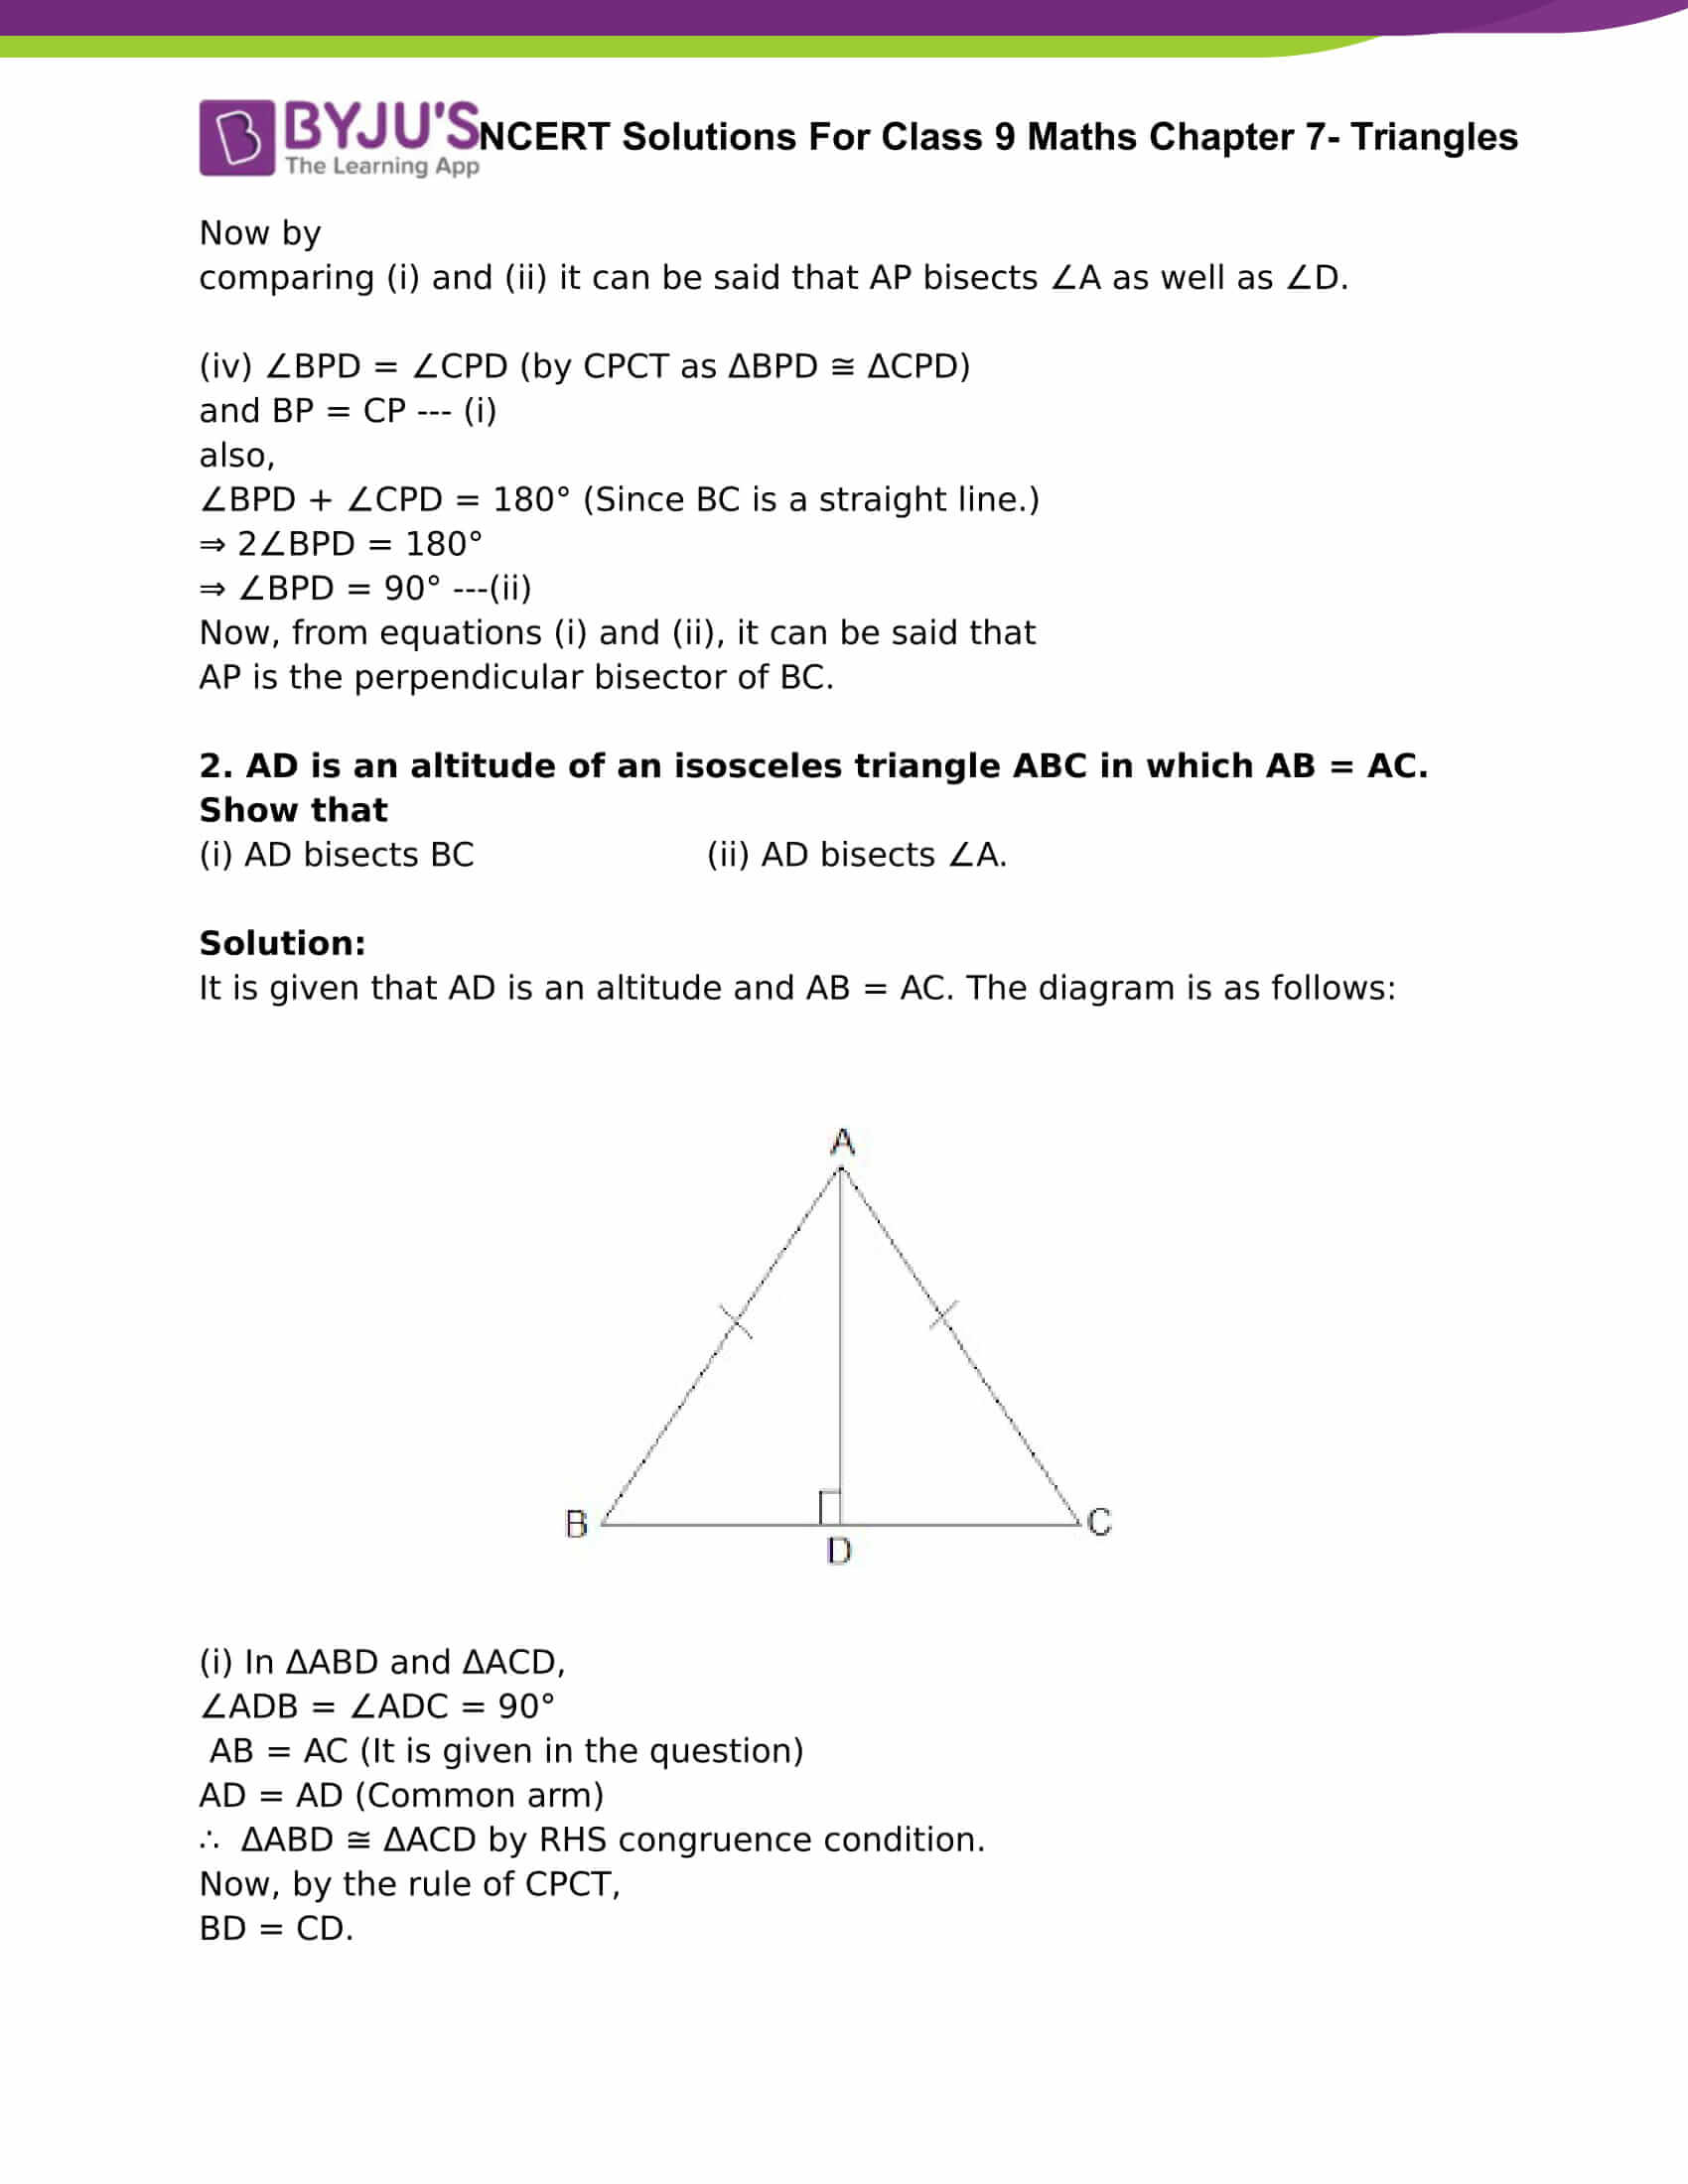 NCERT Solutions For Class 9 Maths Chapter 7 Triangles Part 16